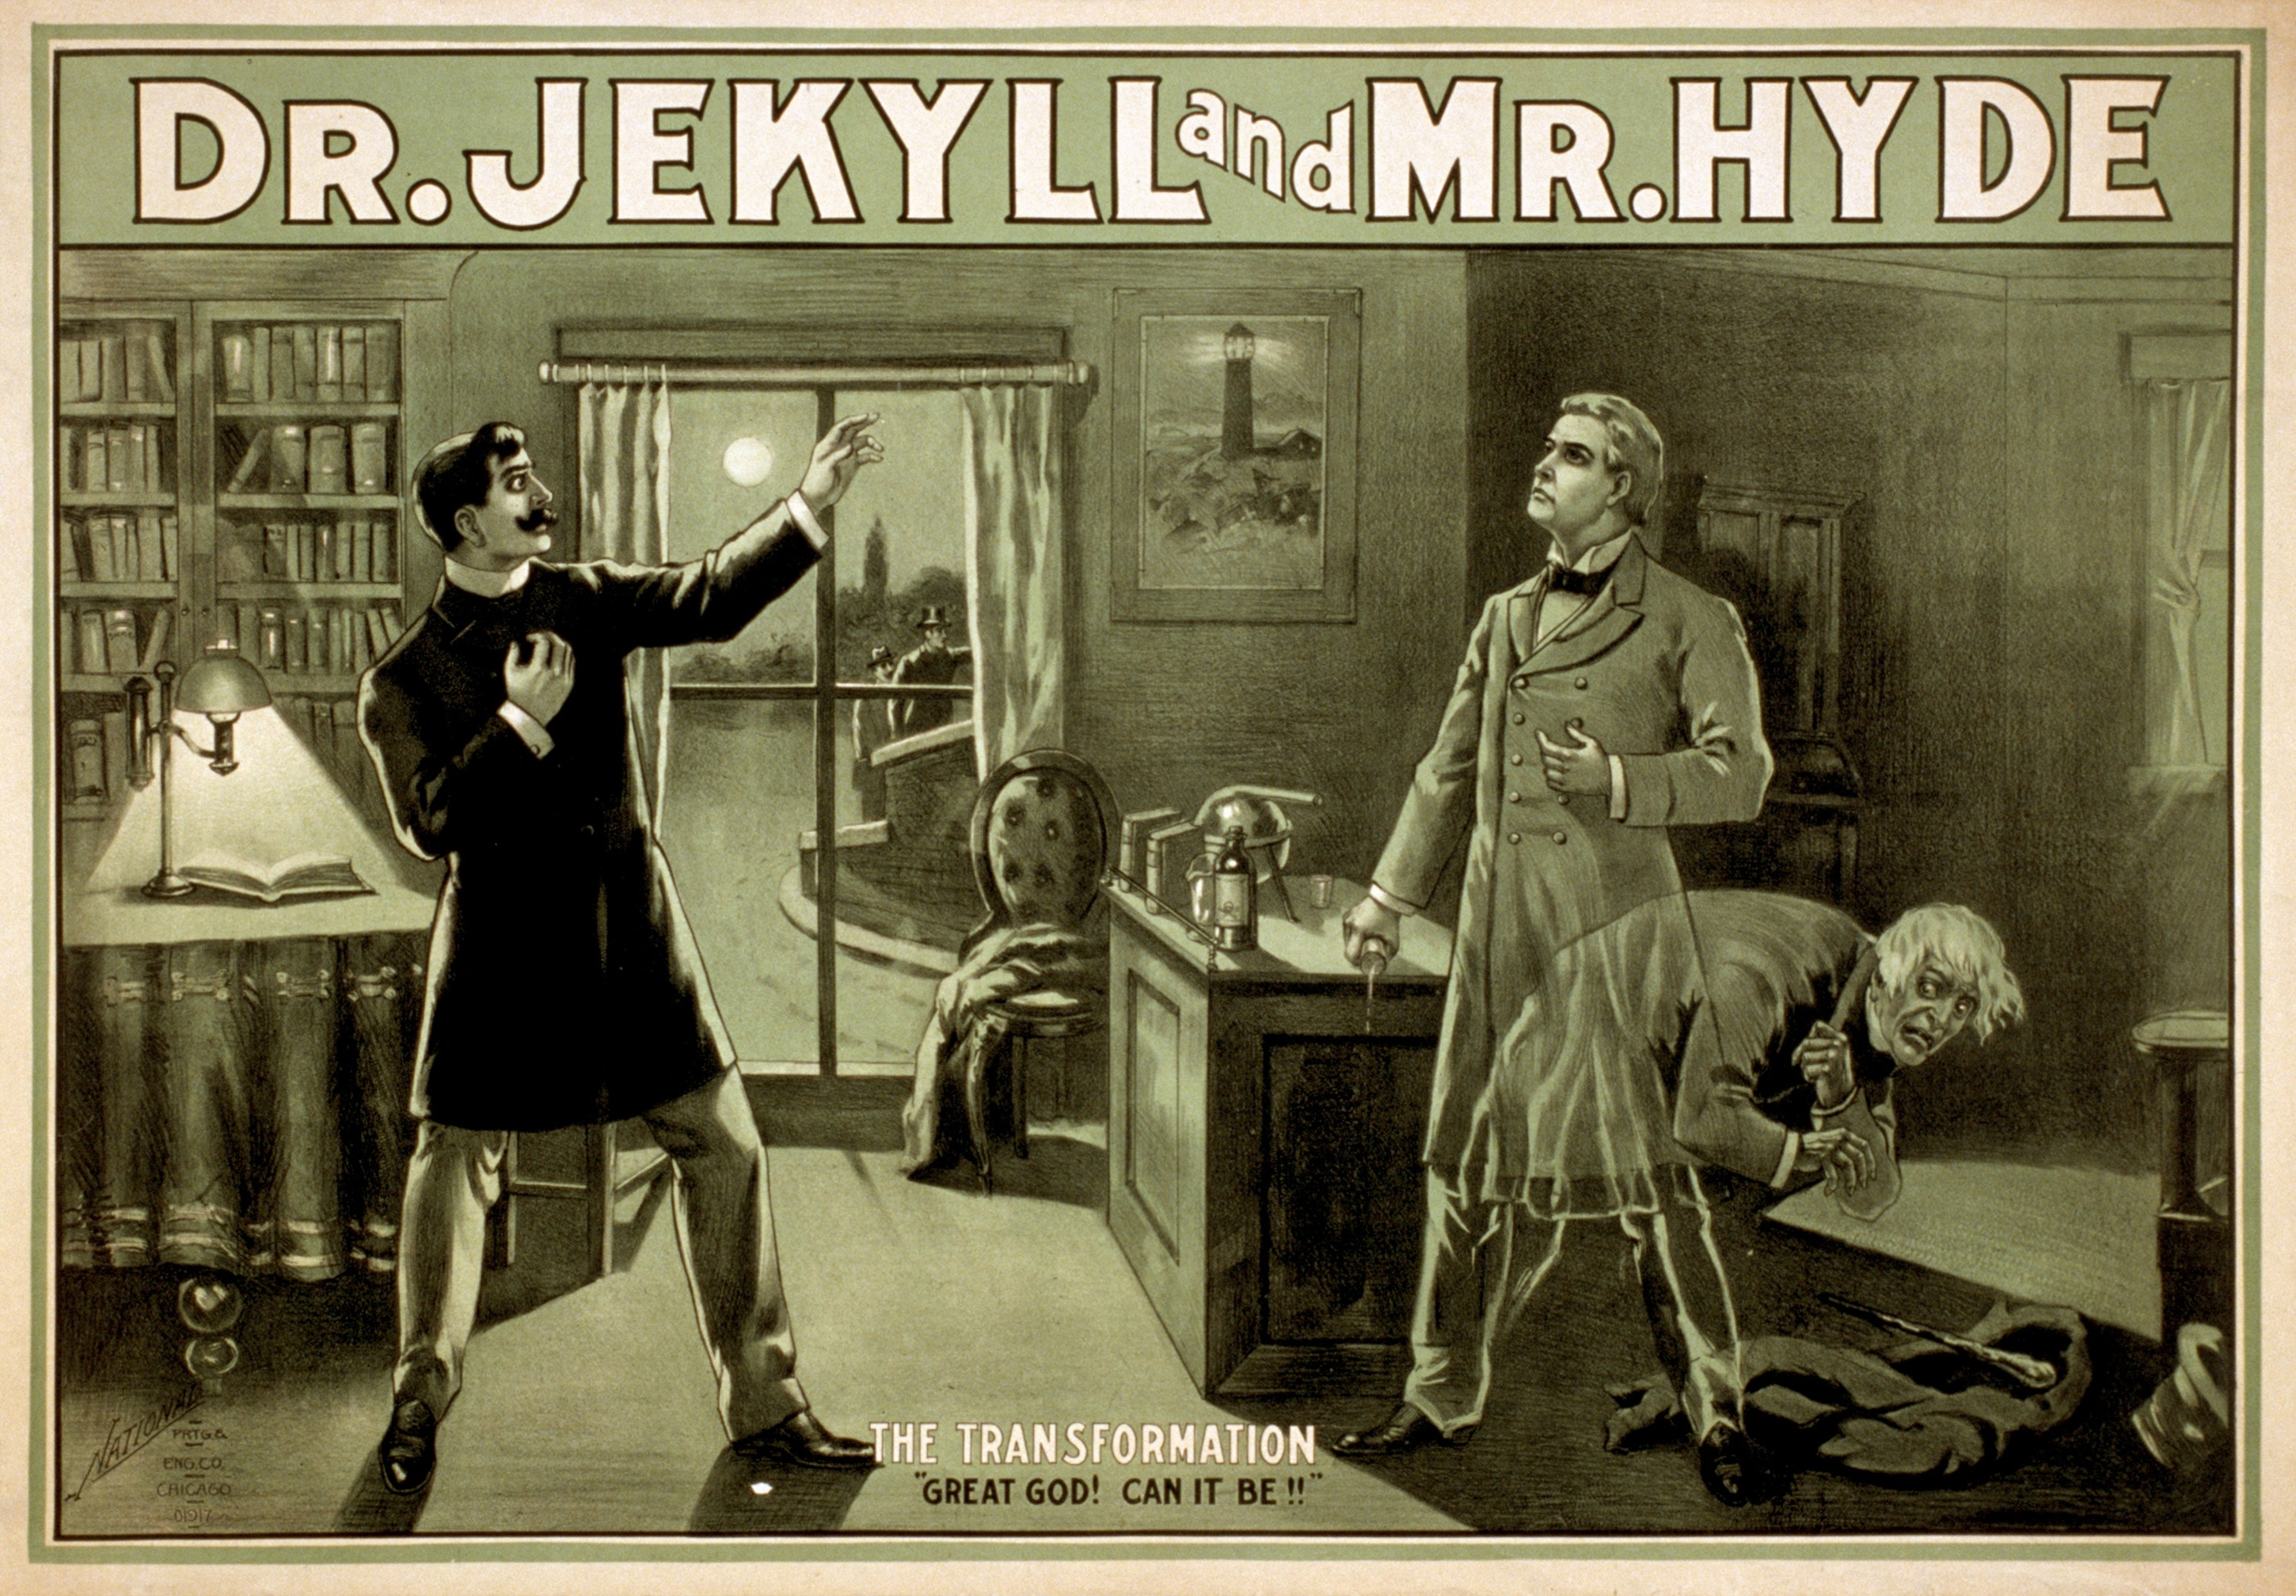 https://upload.wikimedia.org/wikipedia/commons/7/78/Dr_Jekyll_and_Mr_Hyde_poster_edit2.jpg